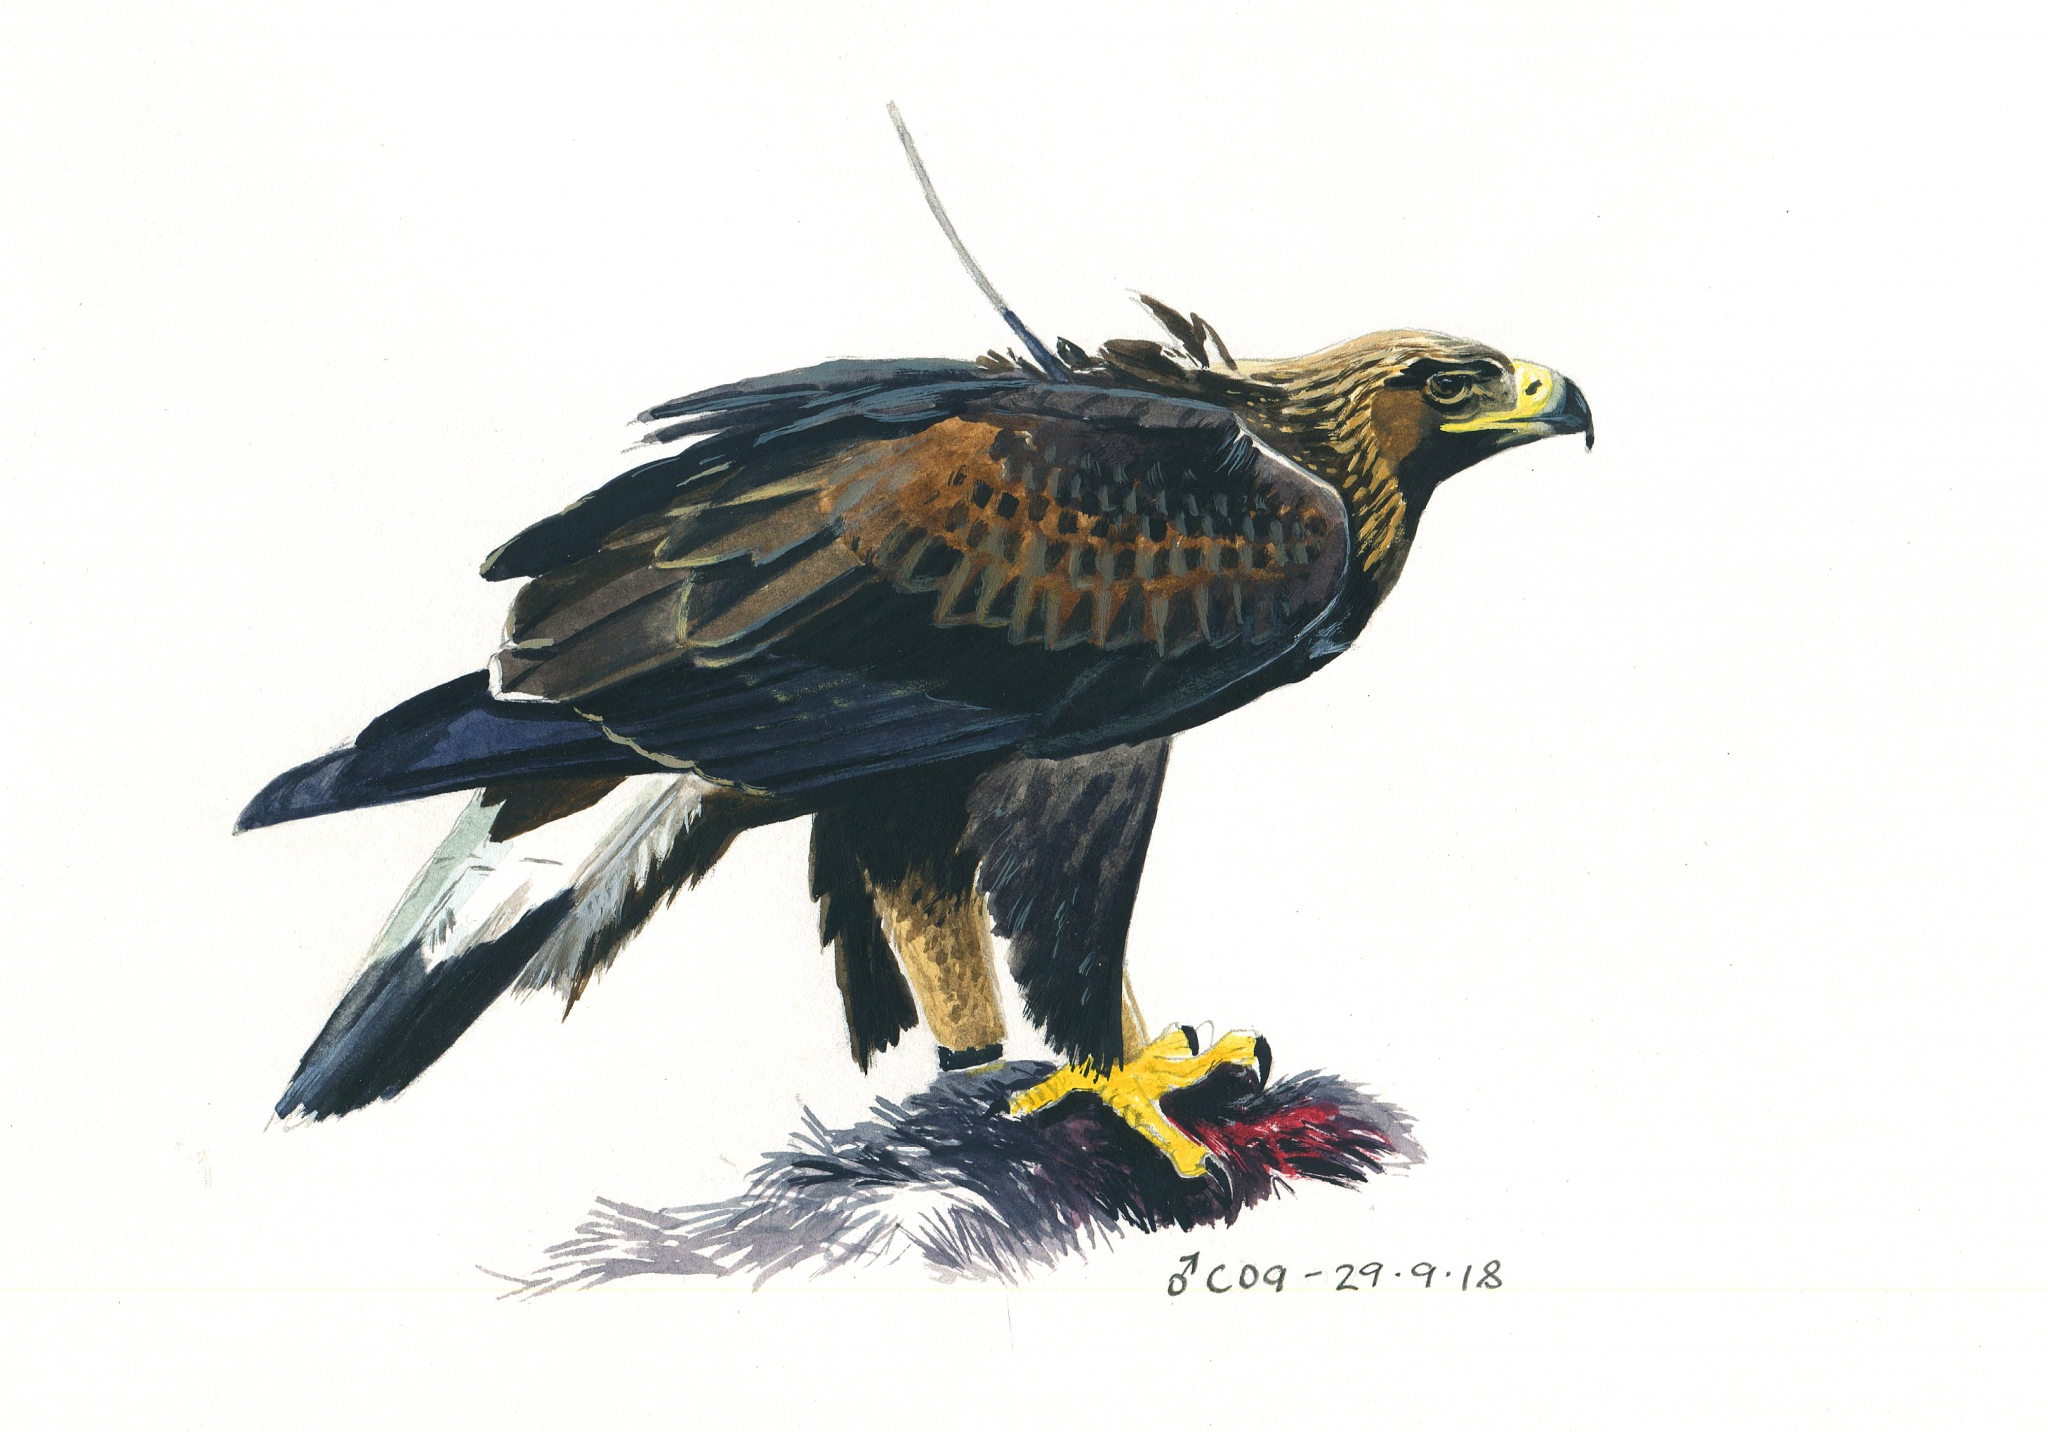 Merry Christmas from the South of Scotland Golden Eagle Project